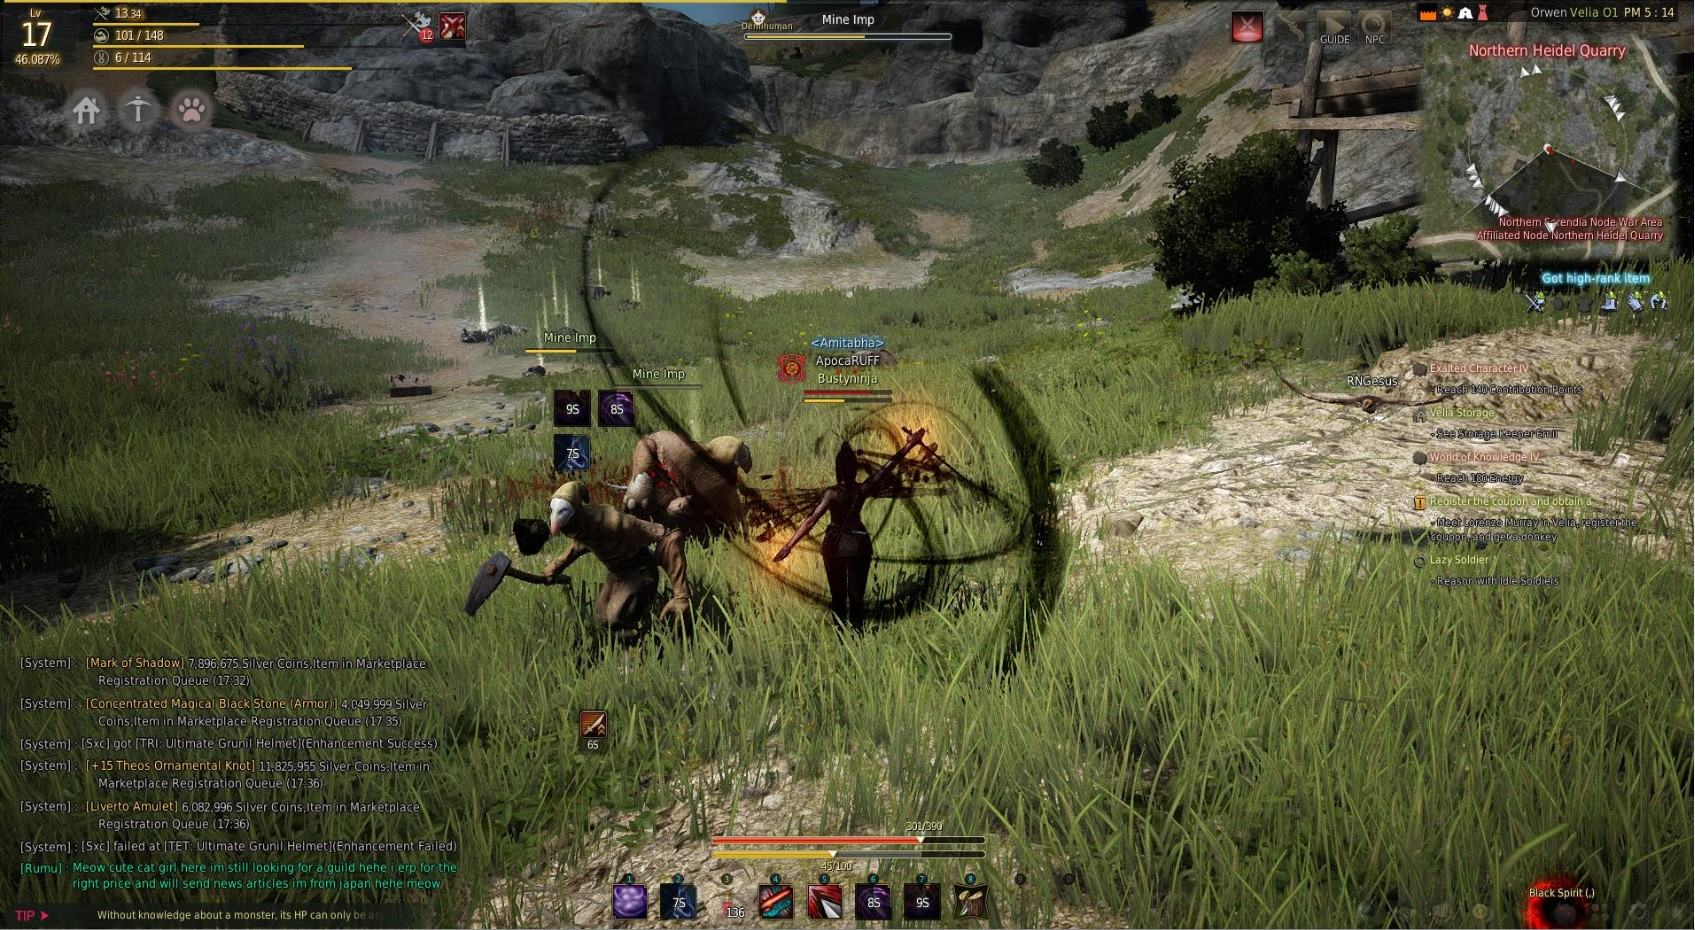 2017 - The Year of the Sandbox MMOs Dawns